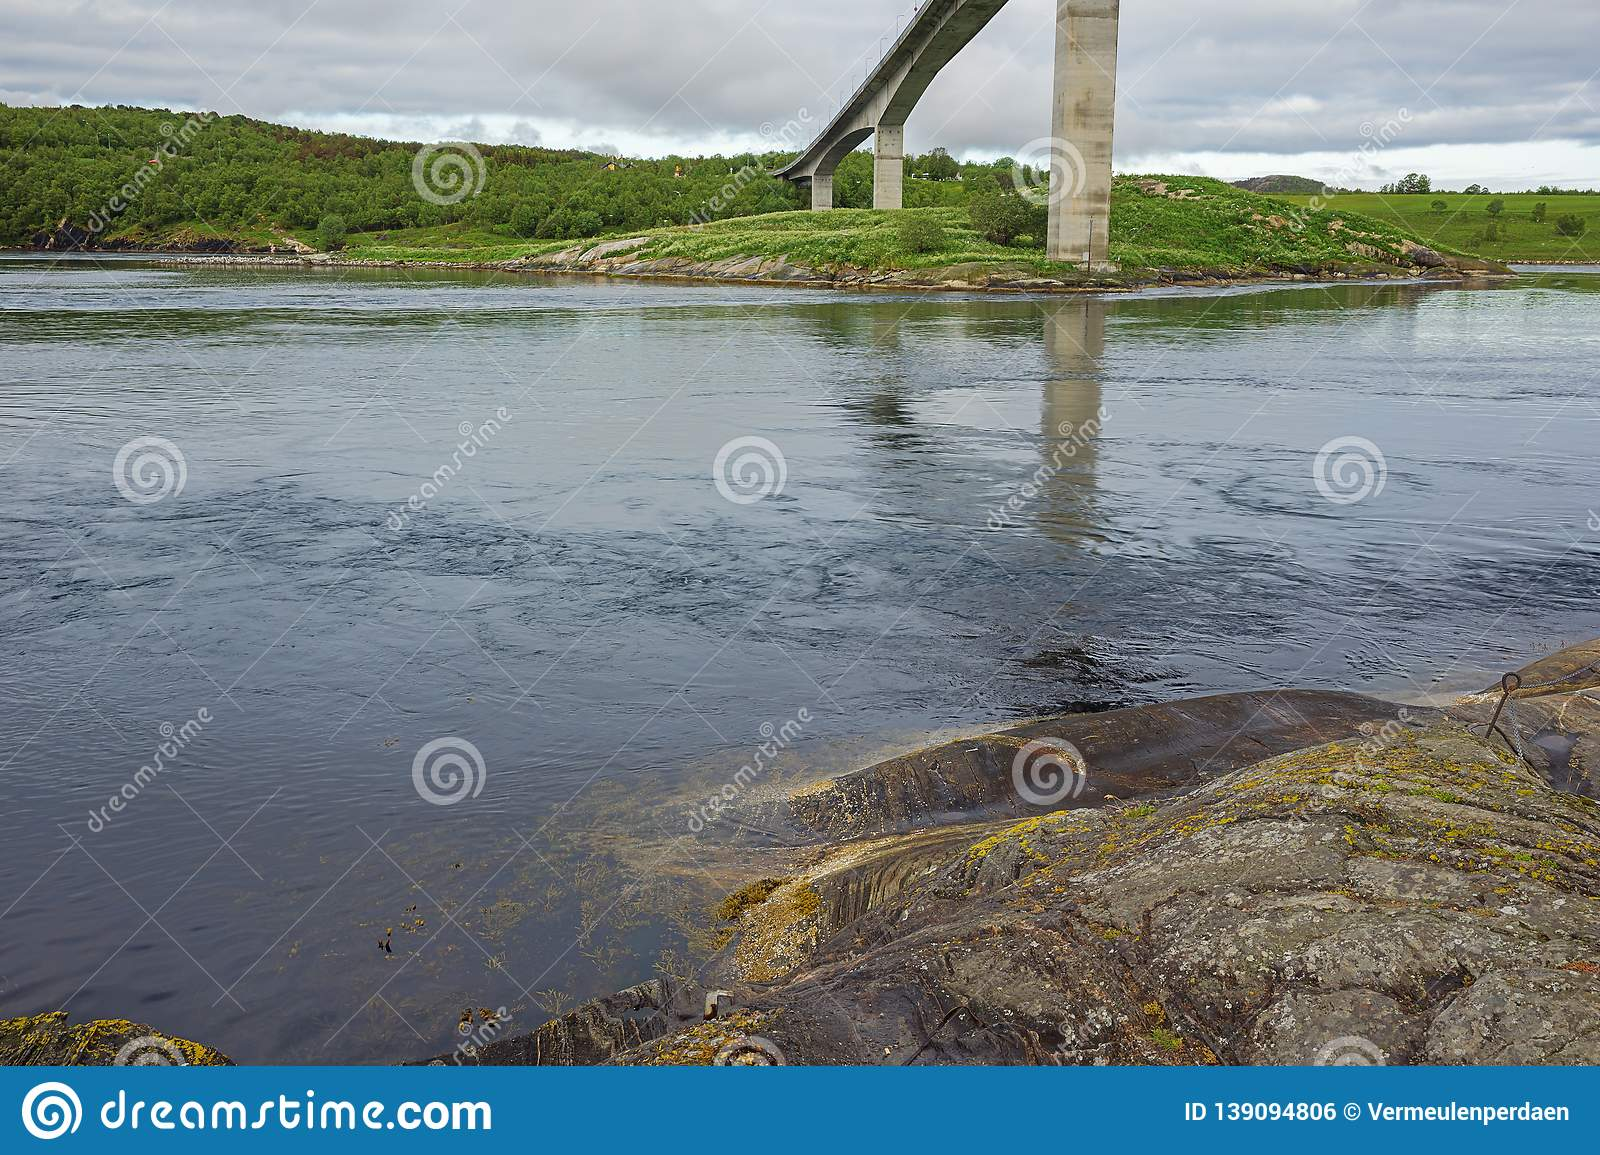 At the base of the Saltstraumen bridge